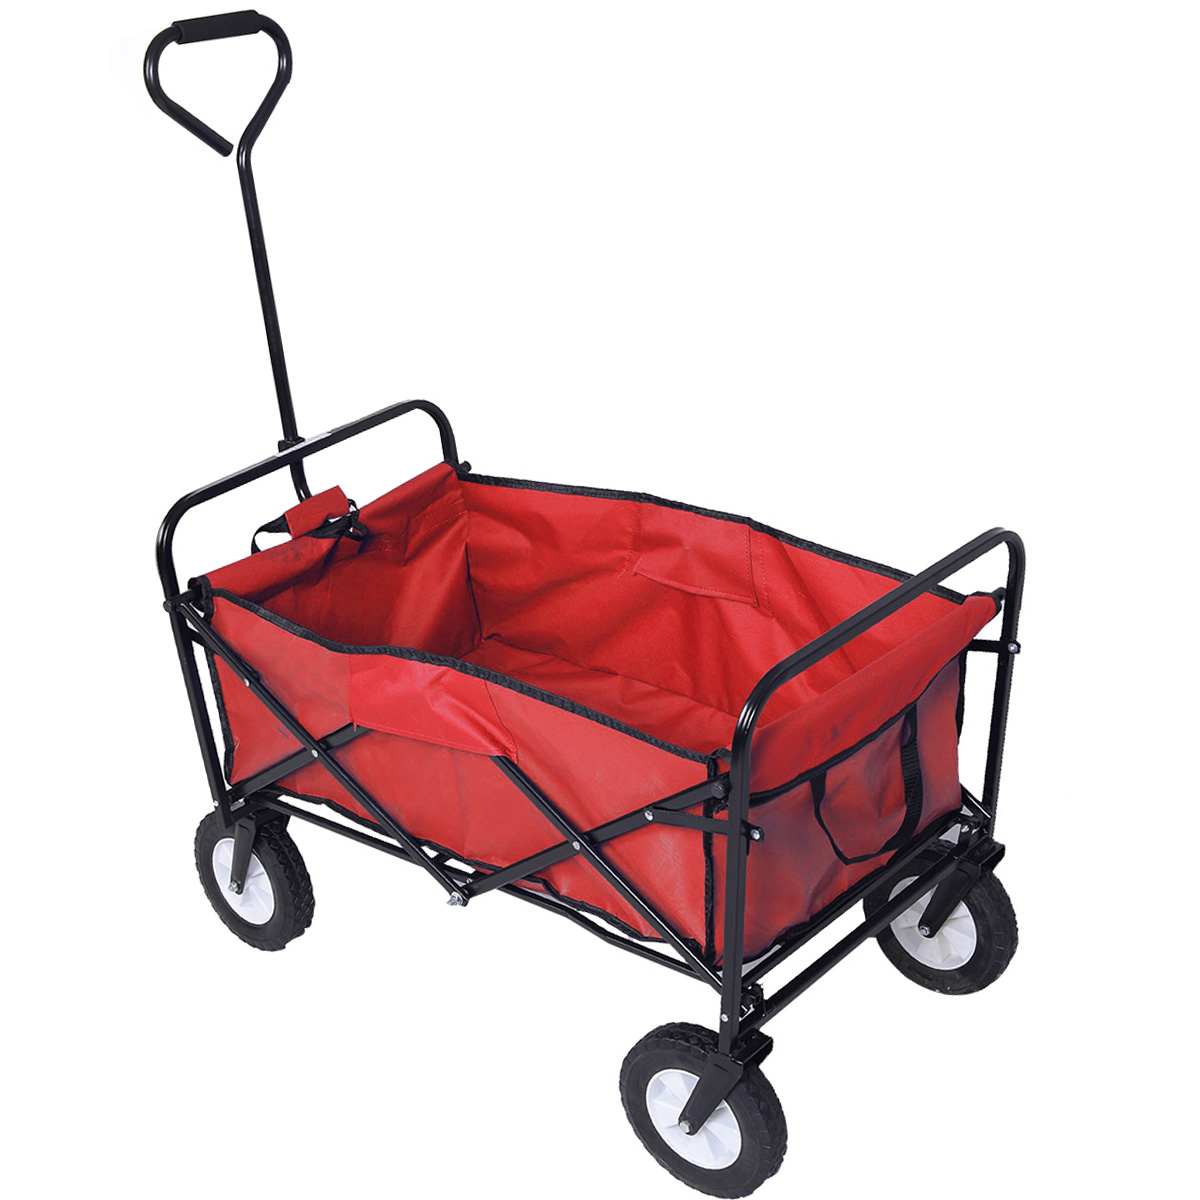 Costway Collapsible Folding Wagon Cart Garden Buggy Shopping Beach Toy Sports Red/blue (Red)